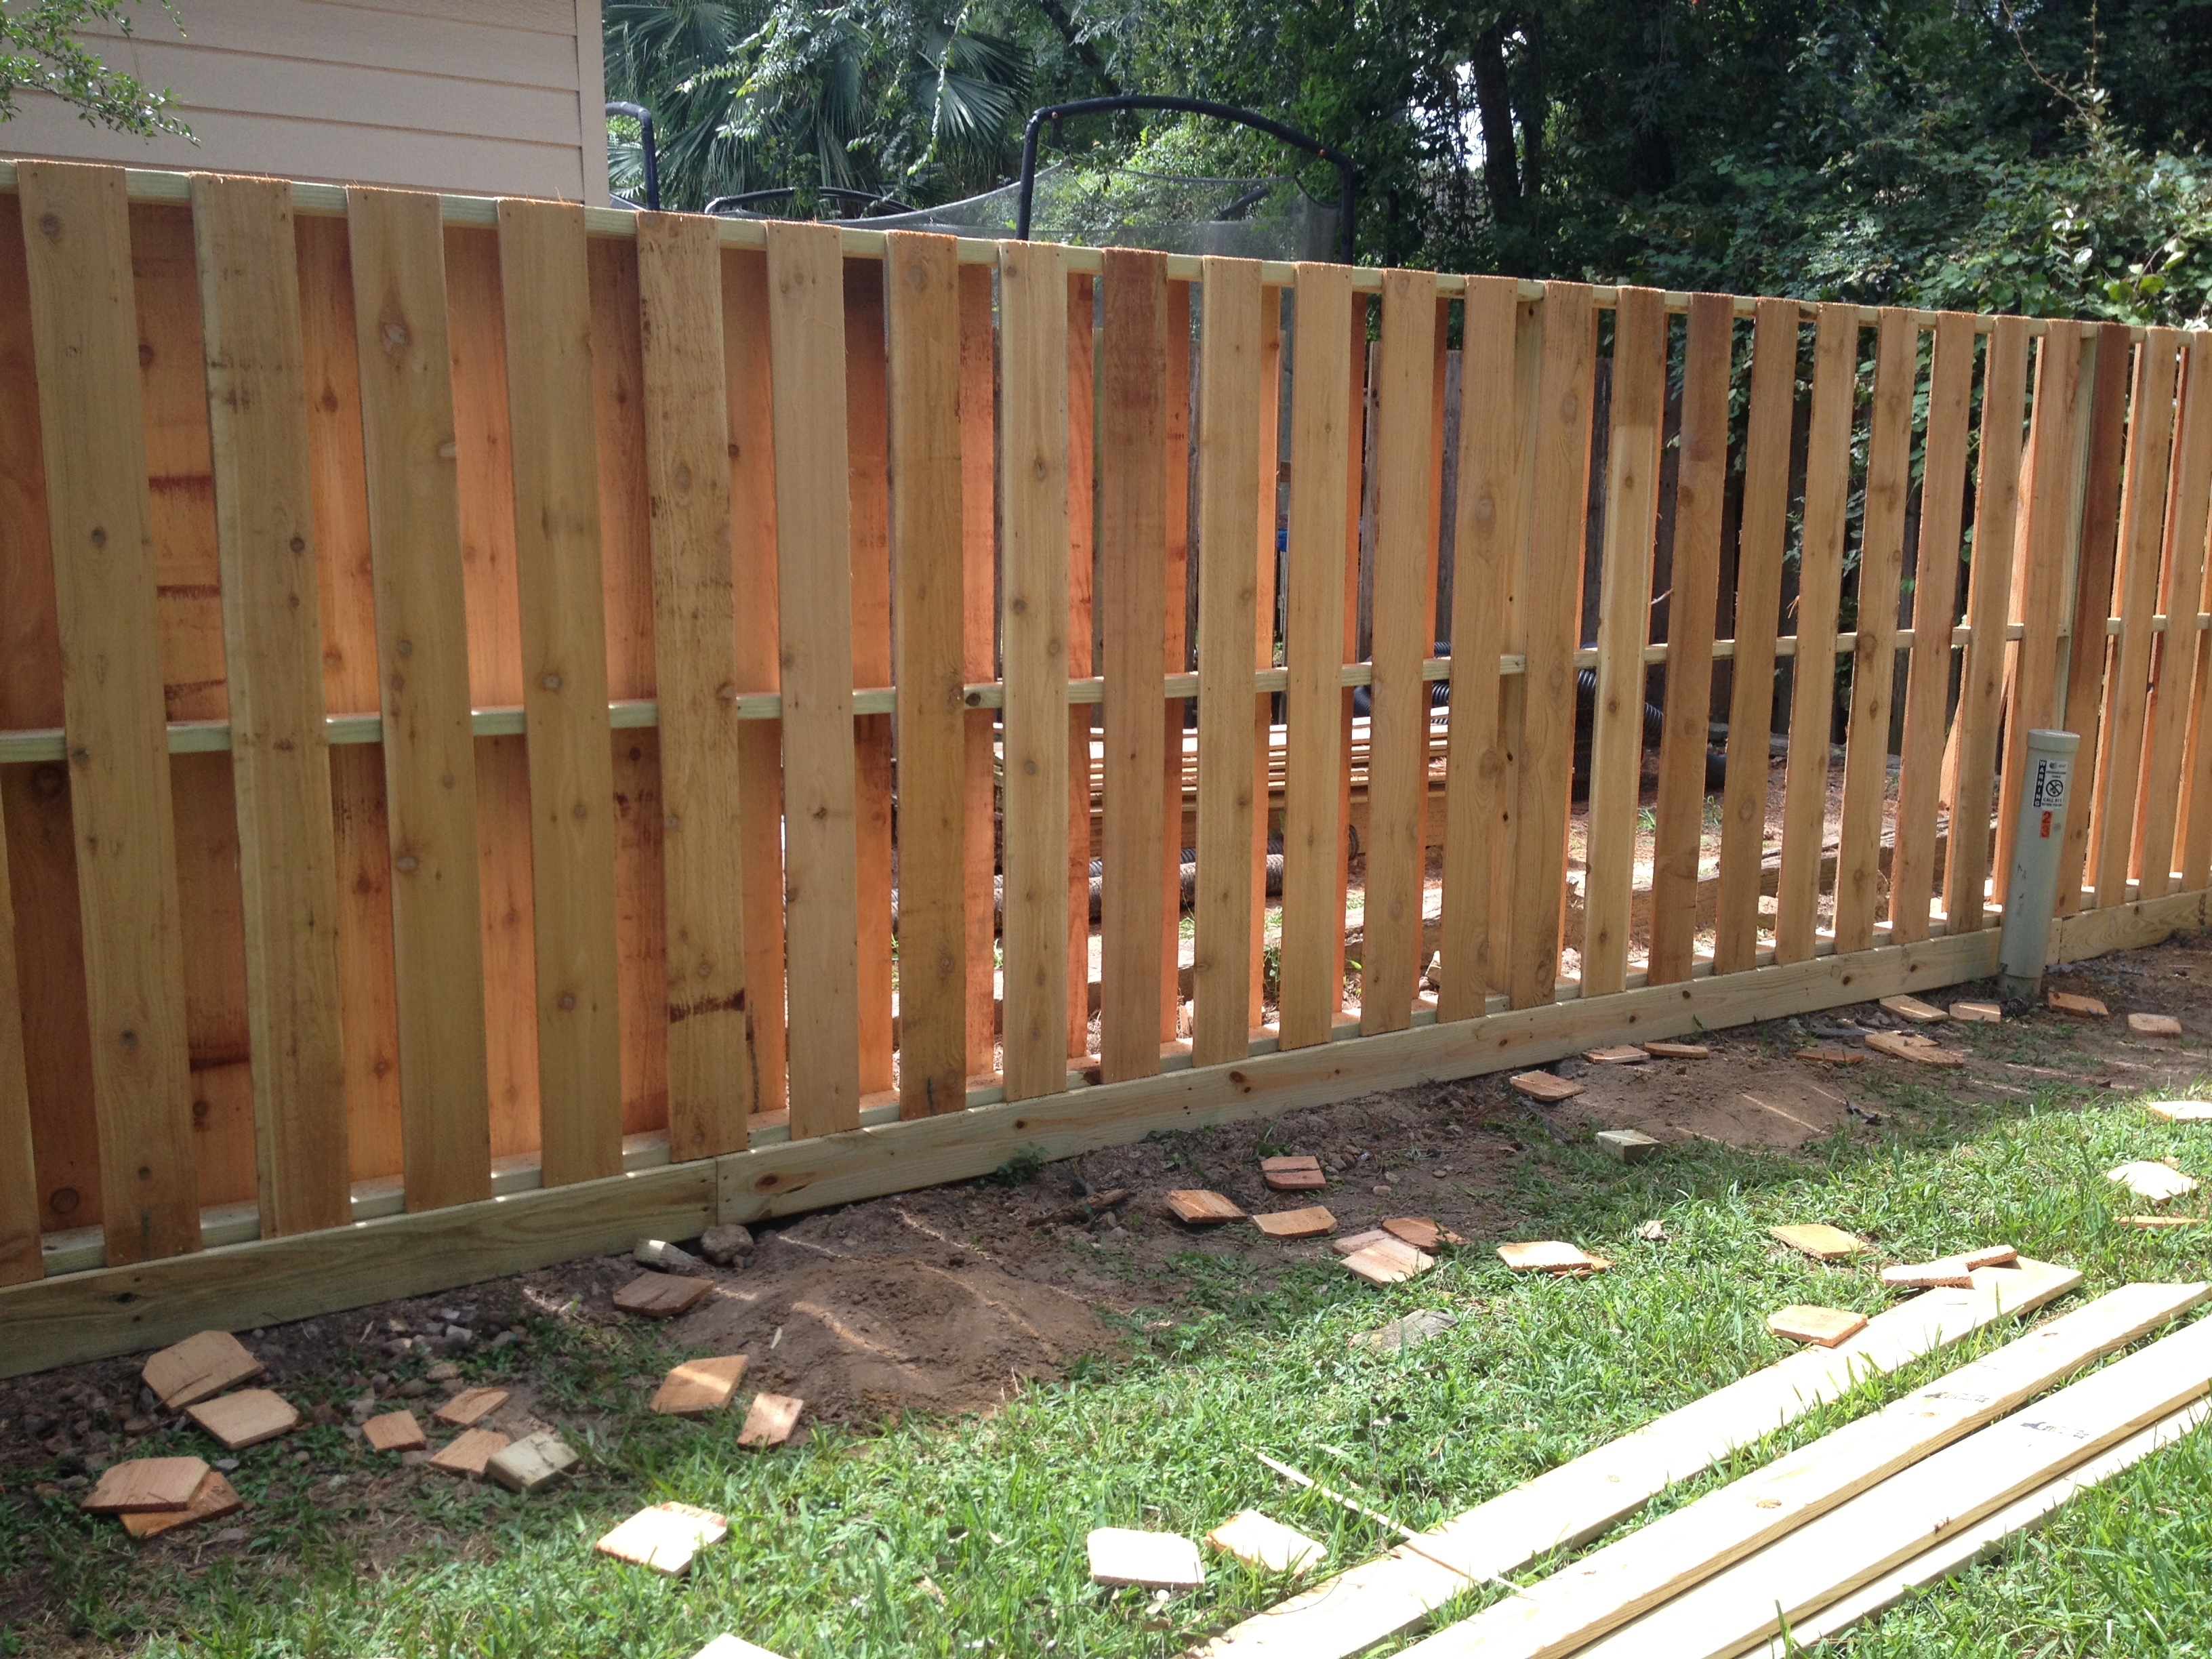 Pictures of wooden fences Front Yard Woodenfencestomballtx07 Brock Fence Inc Wooden Fences 360 Fence Company